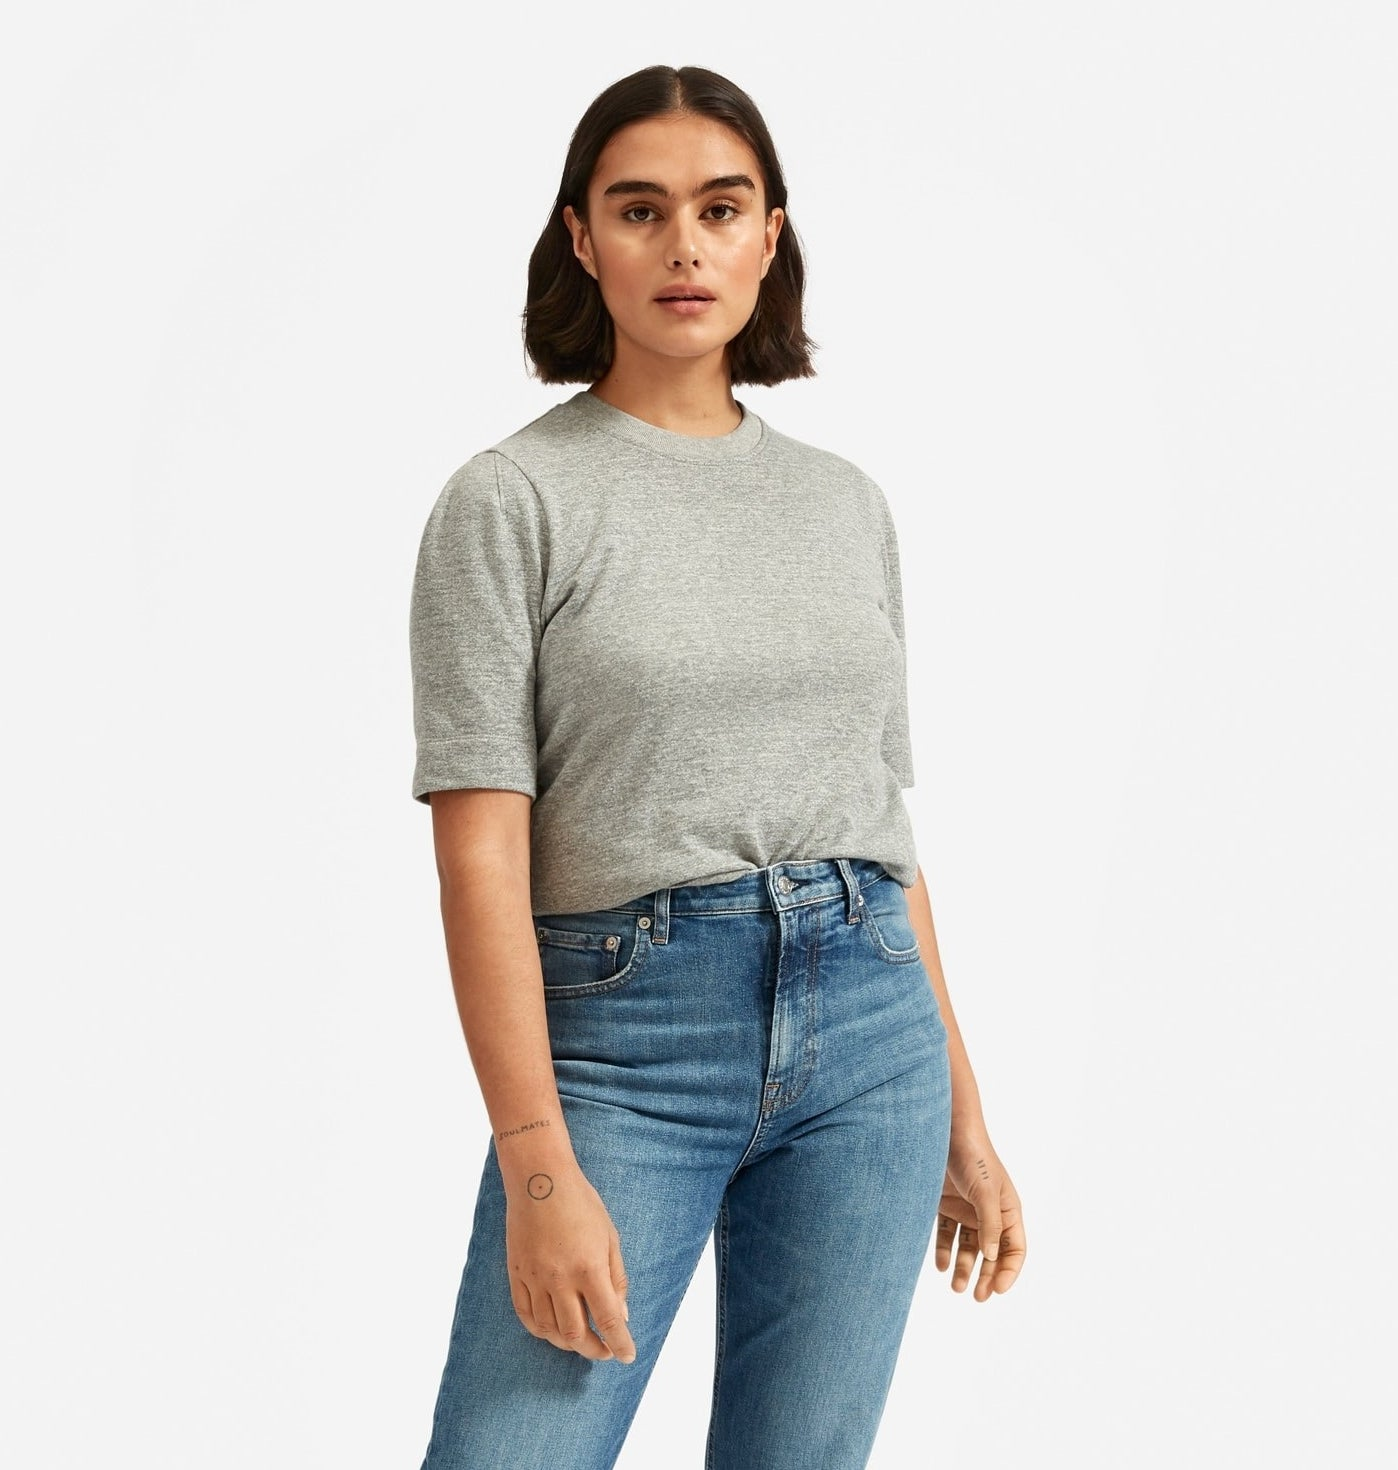 model in grey crewneck tee with almost elbow length sleeves